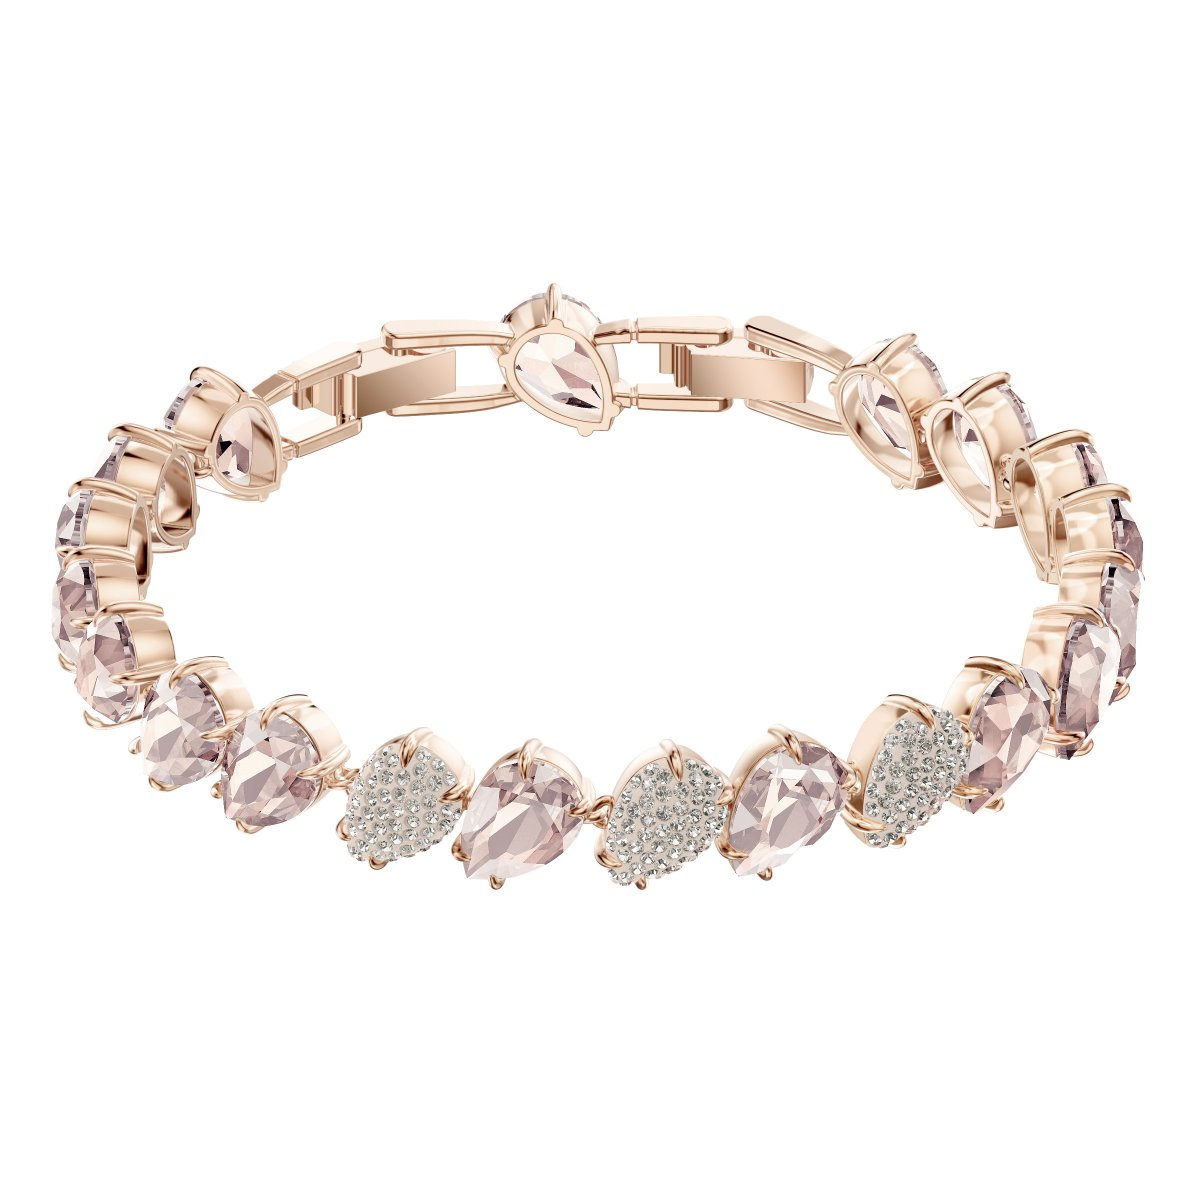 Náramok SWAROVSKI MIX BRACELET, PINK, ROSE GOLD PLATING